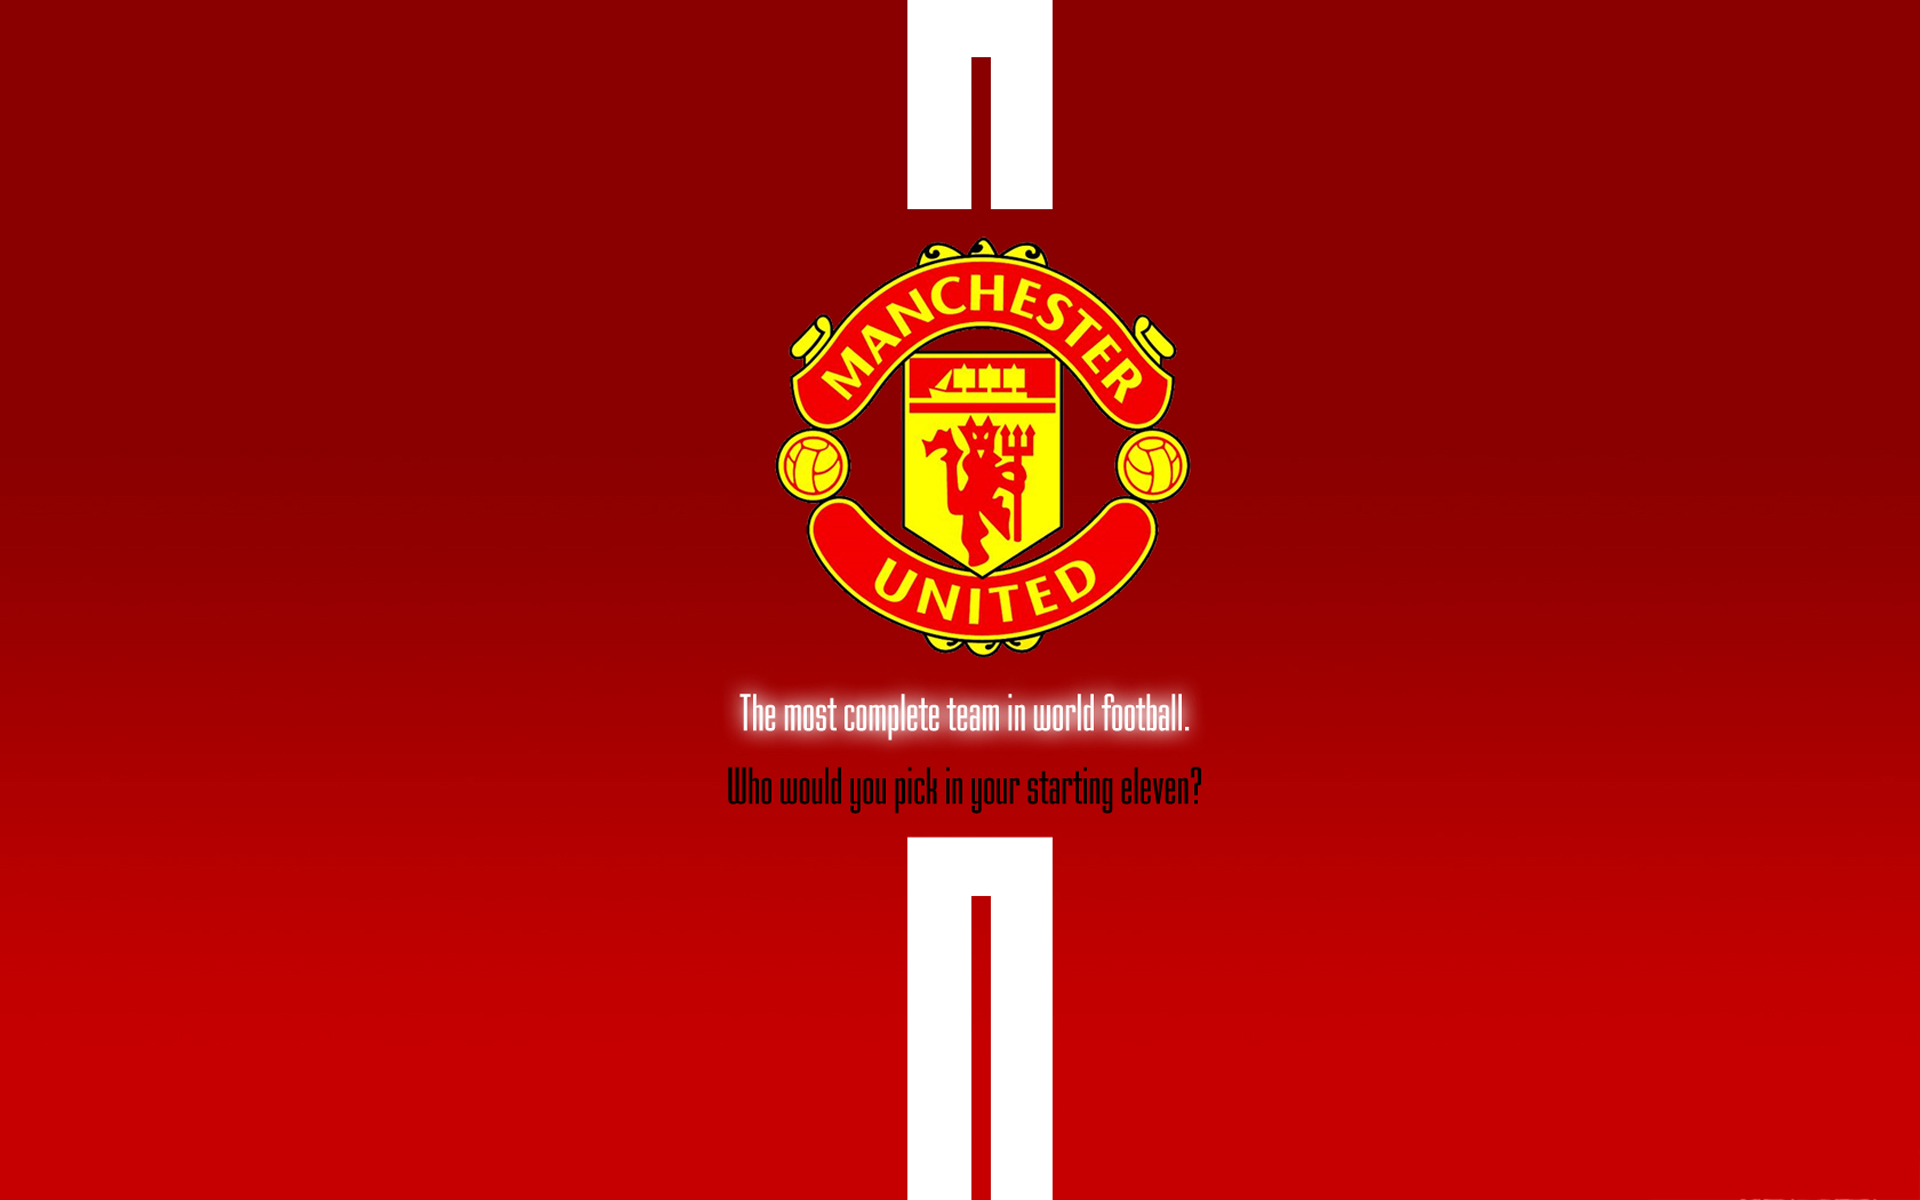 Manchester United Logo Wallpapers 1920x1200